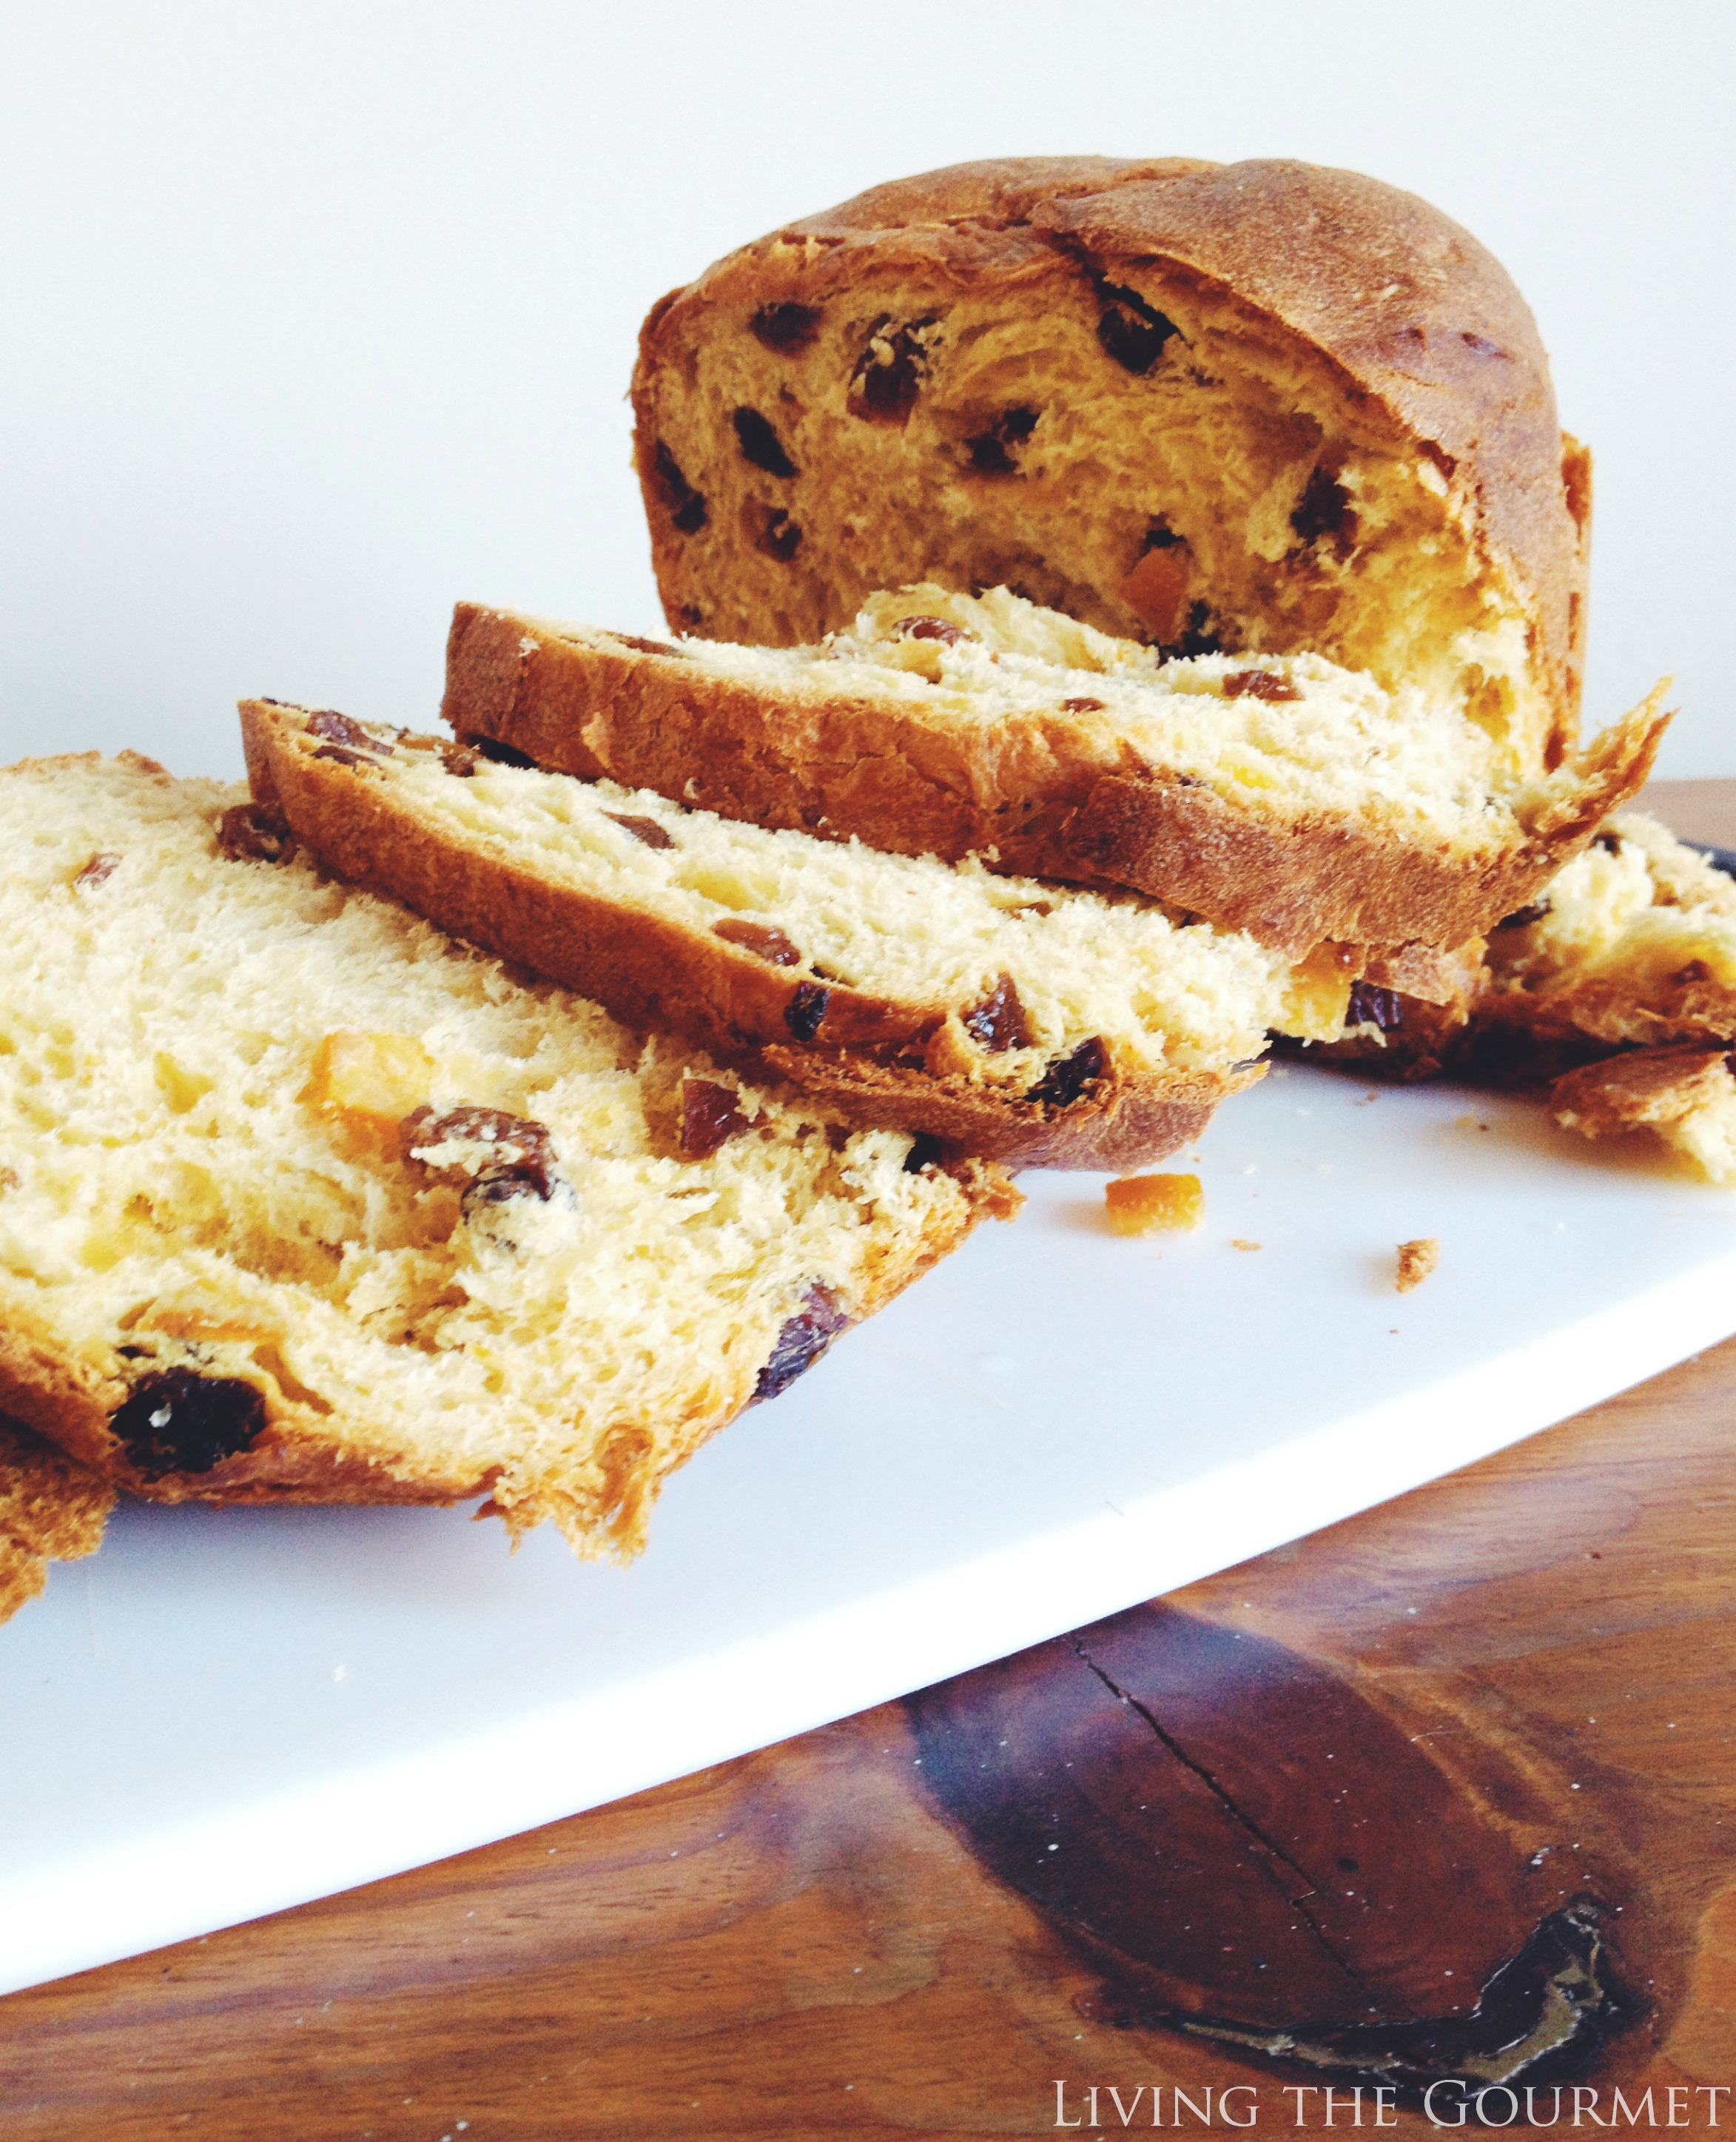 Living the Gourmet: Panettone French Toast